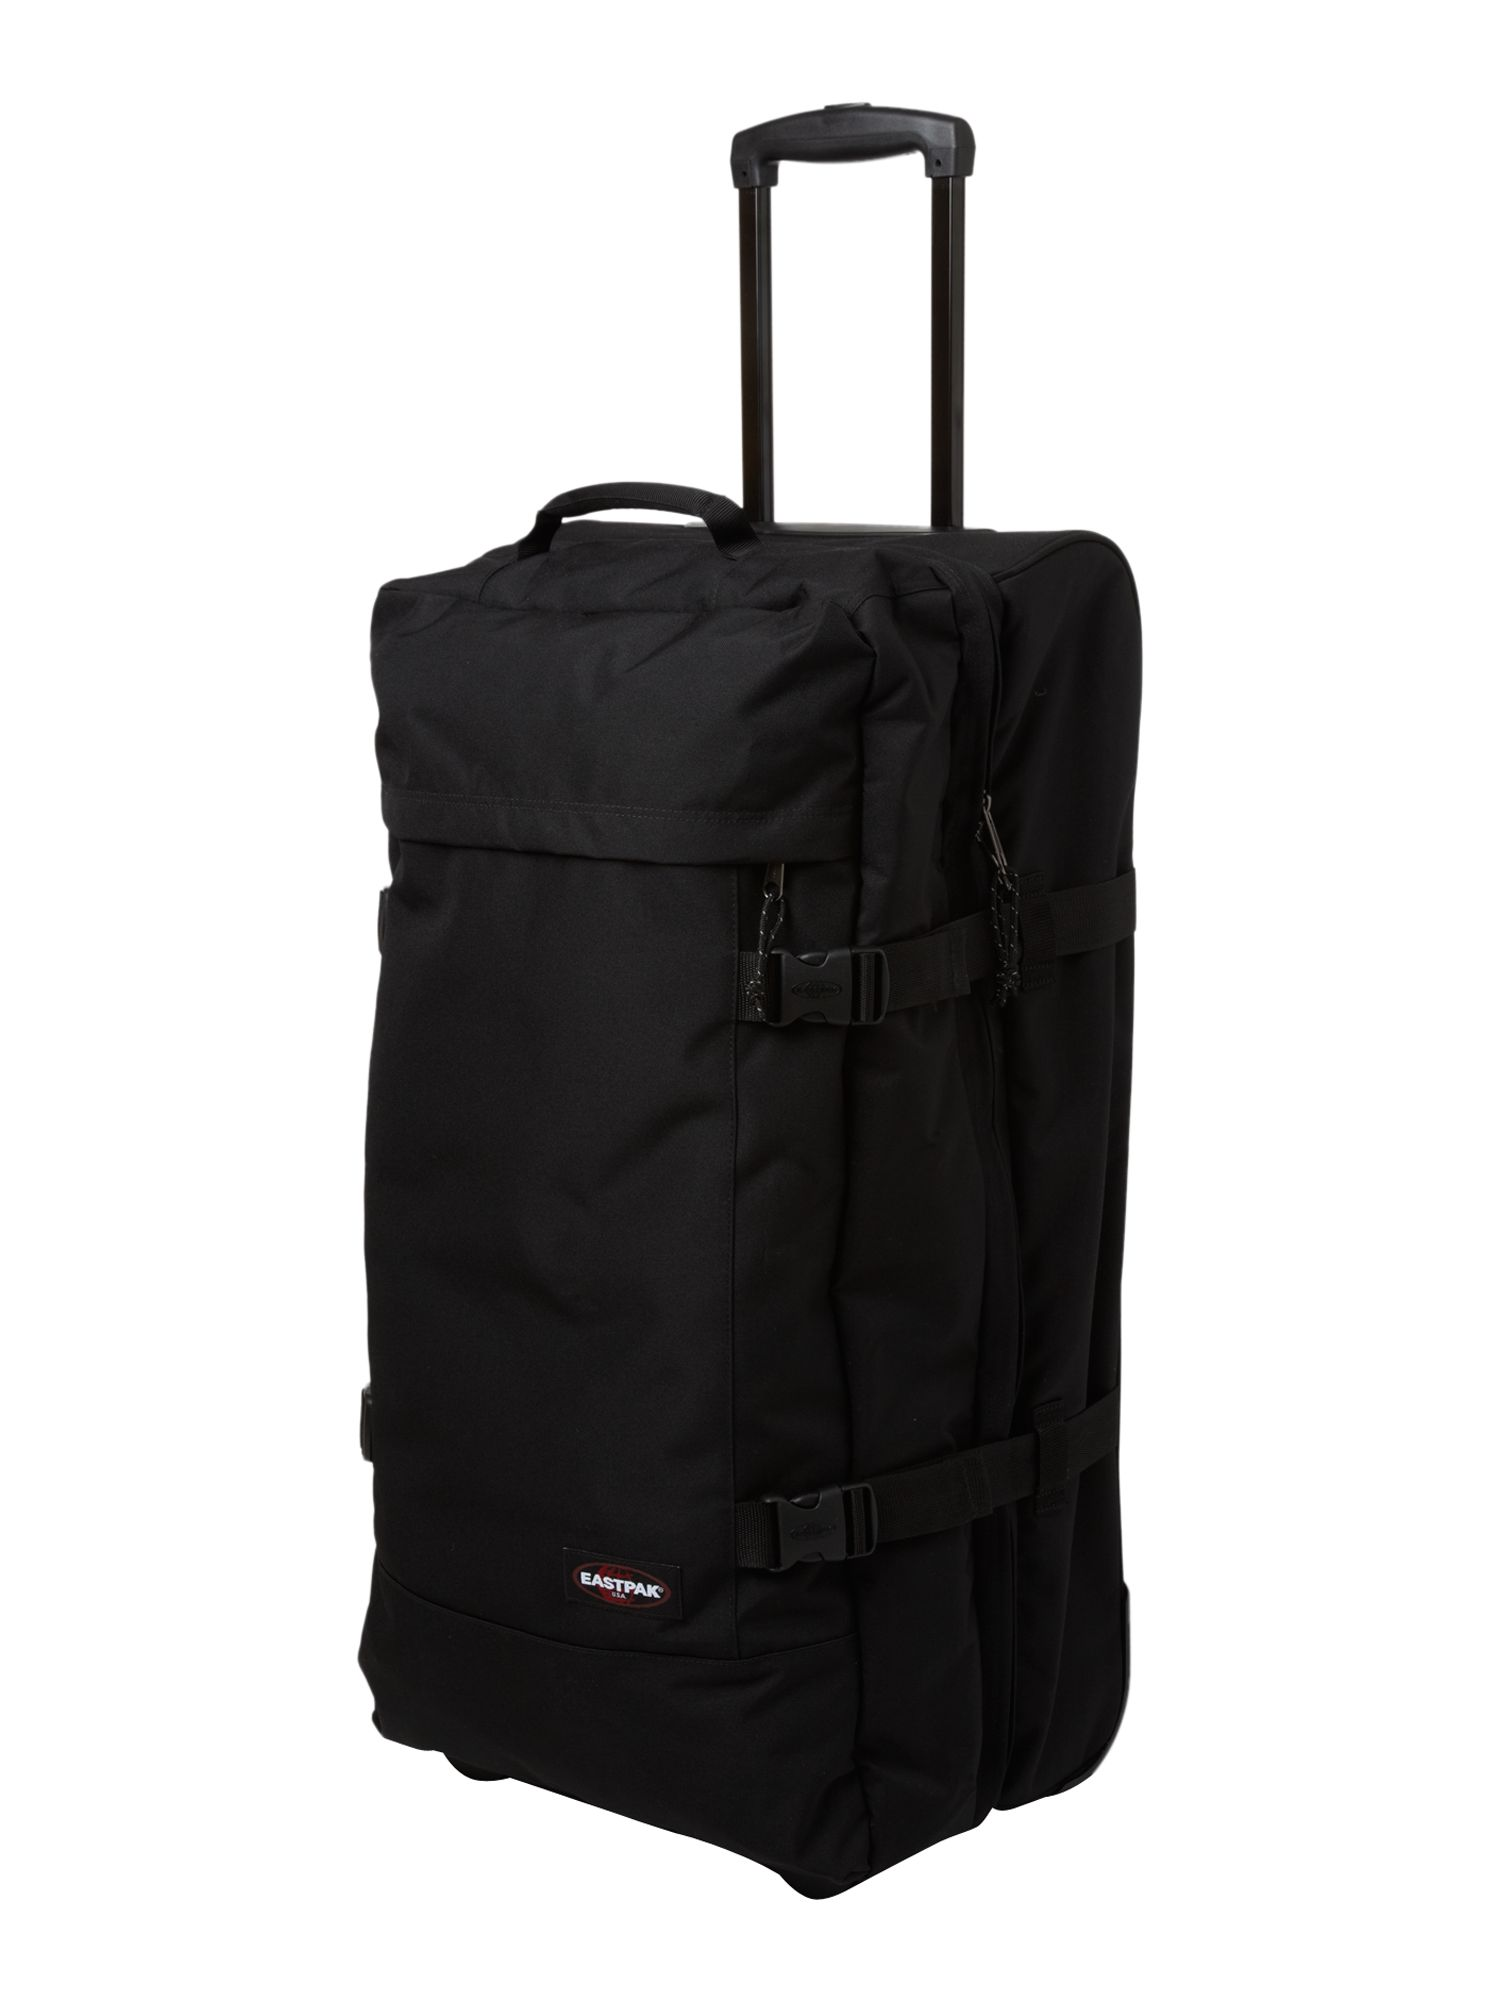 Transfer L Black Trolley Bag